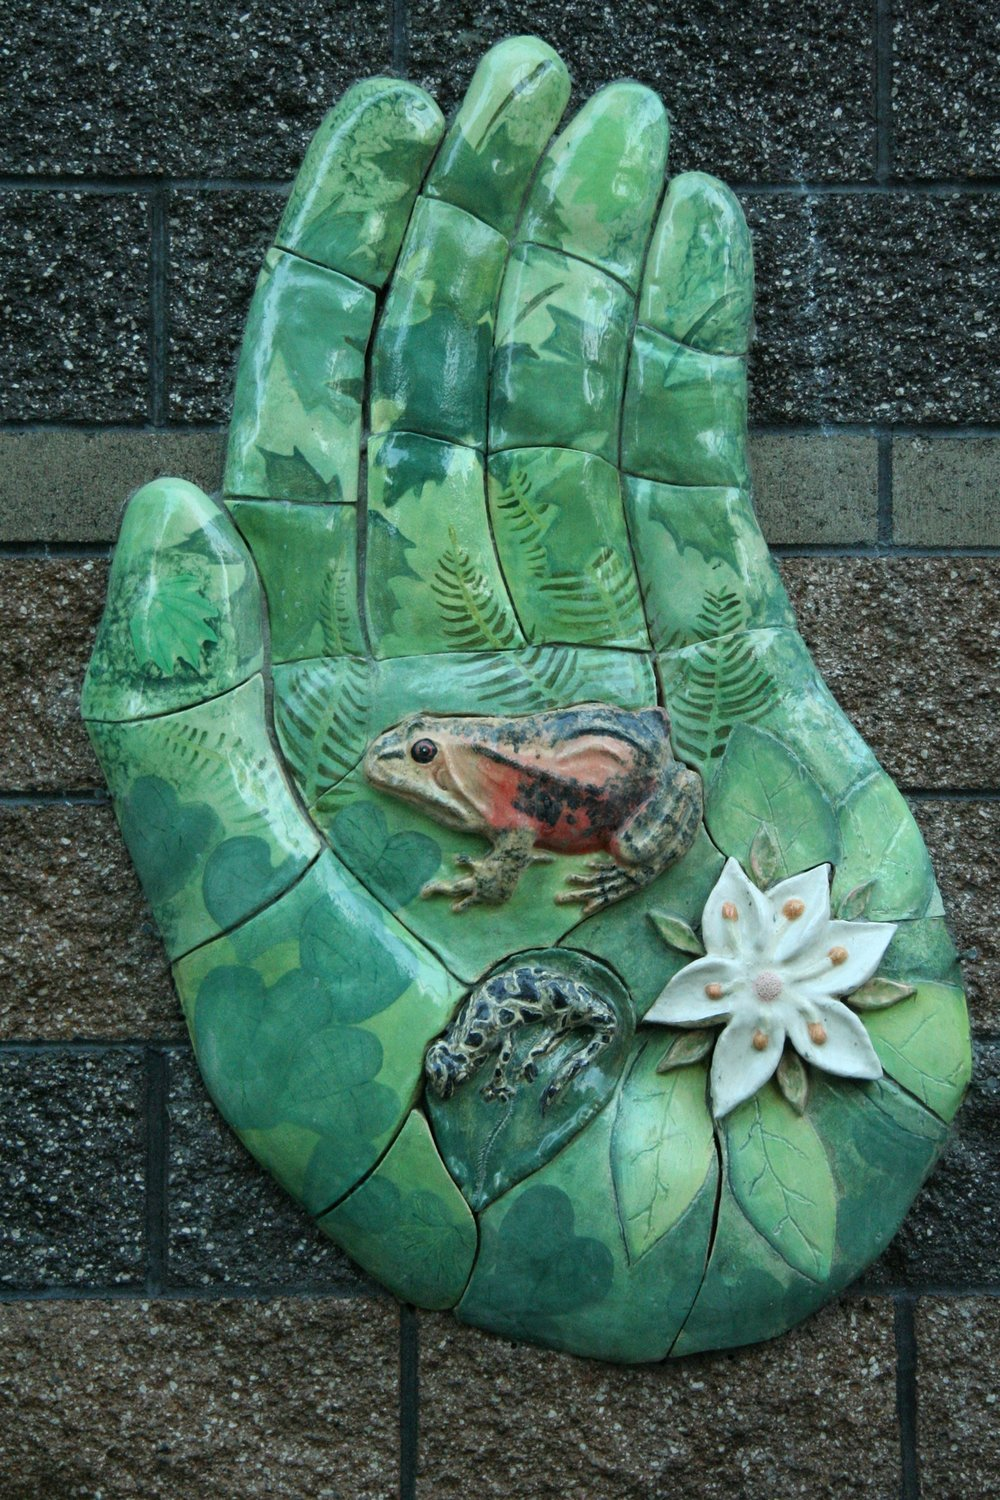 - Students from North Salem High School learned about native species and worked collaboratively to sculpt and paint the bas relief ceramic hand.Big leaf maples, sword ferns, vine maple leaves and a red legged frog are among the images.